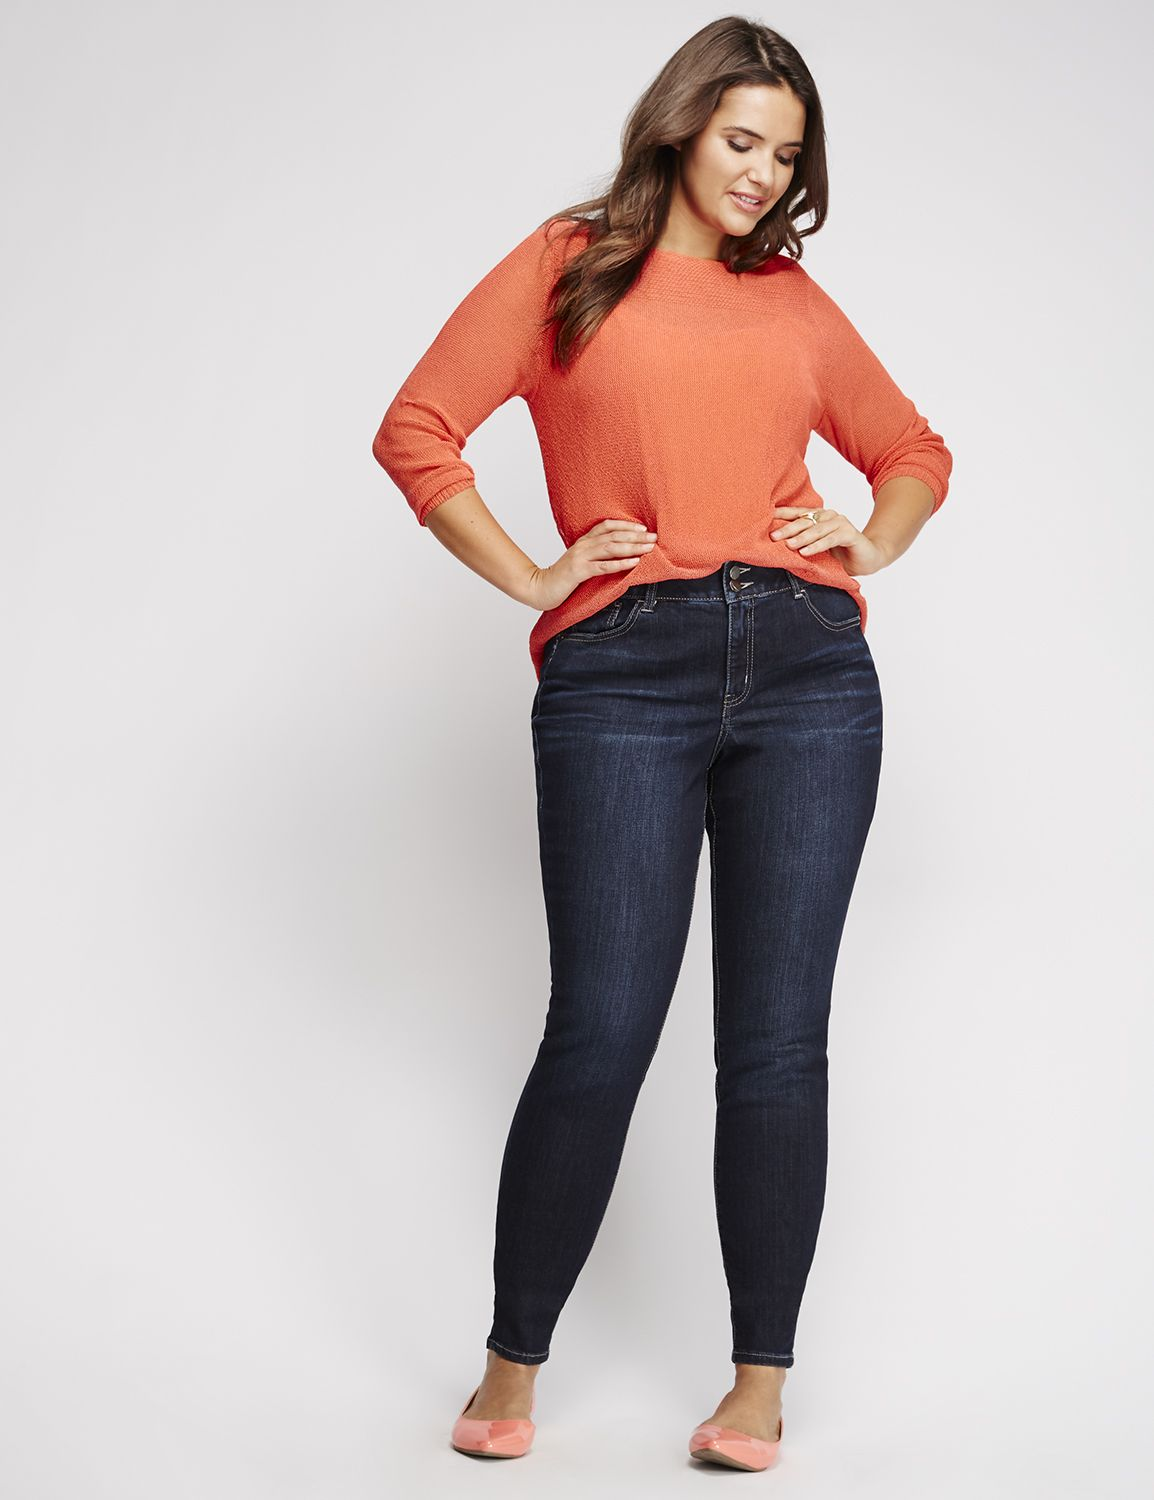 Plus Size Tall Jeans, Denim & Capris | Lane Bryant